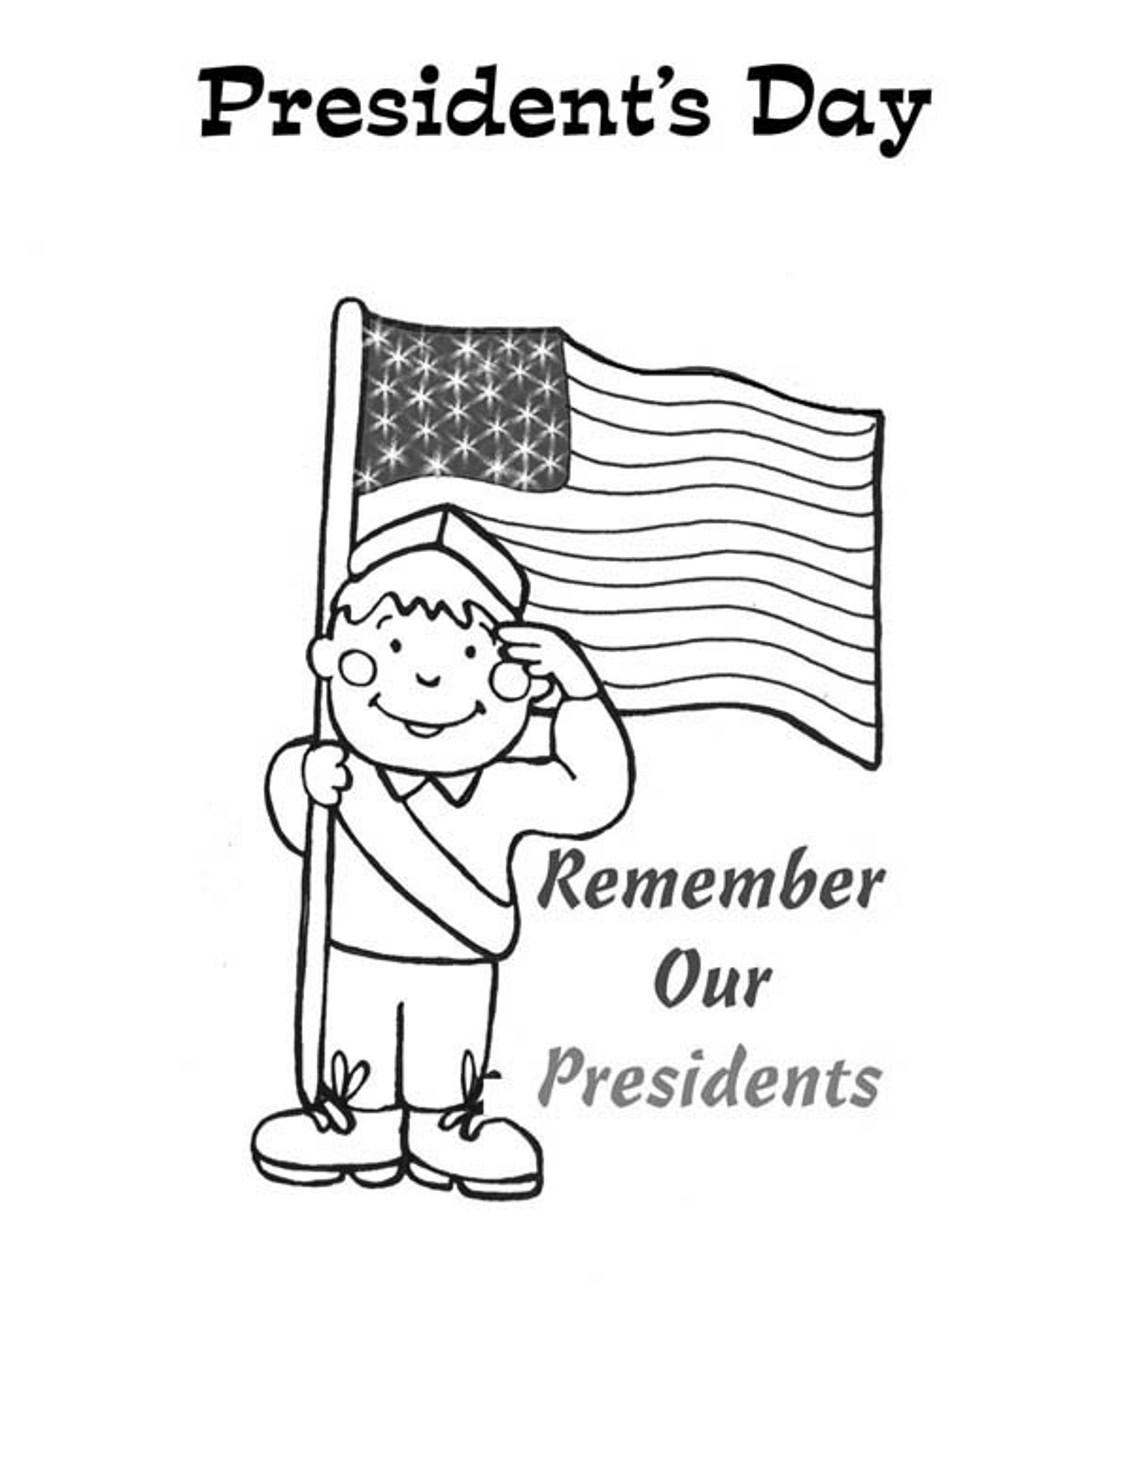 Remember our Presidents Coloring Page